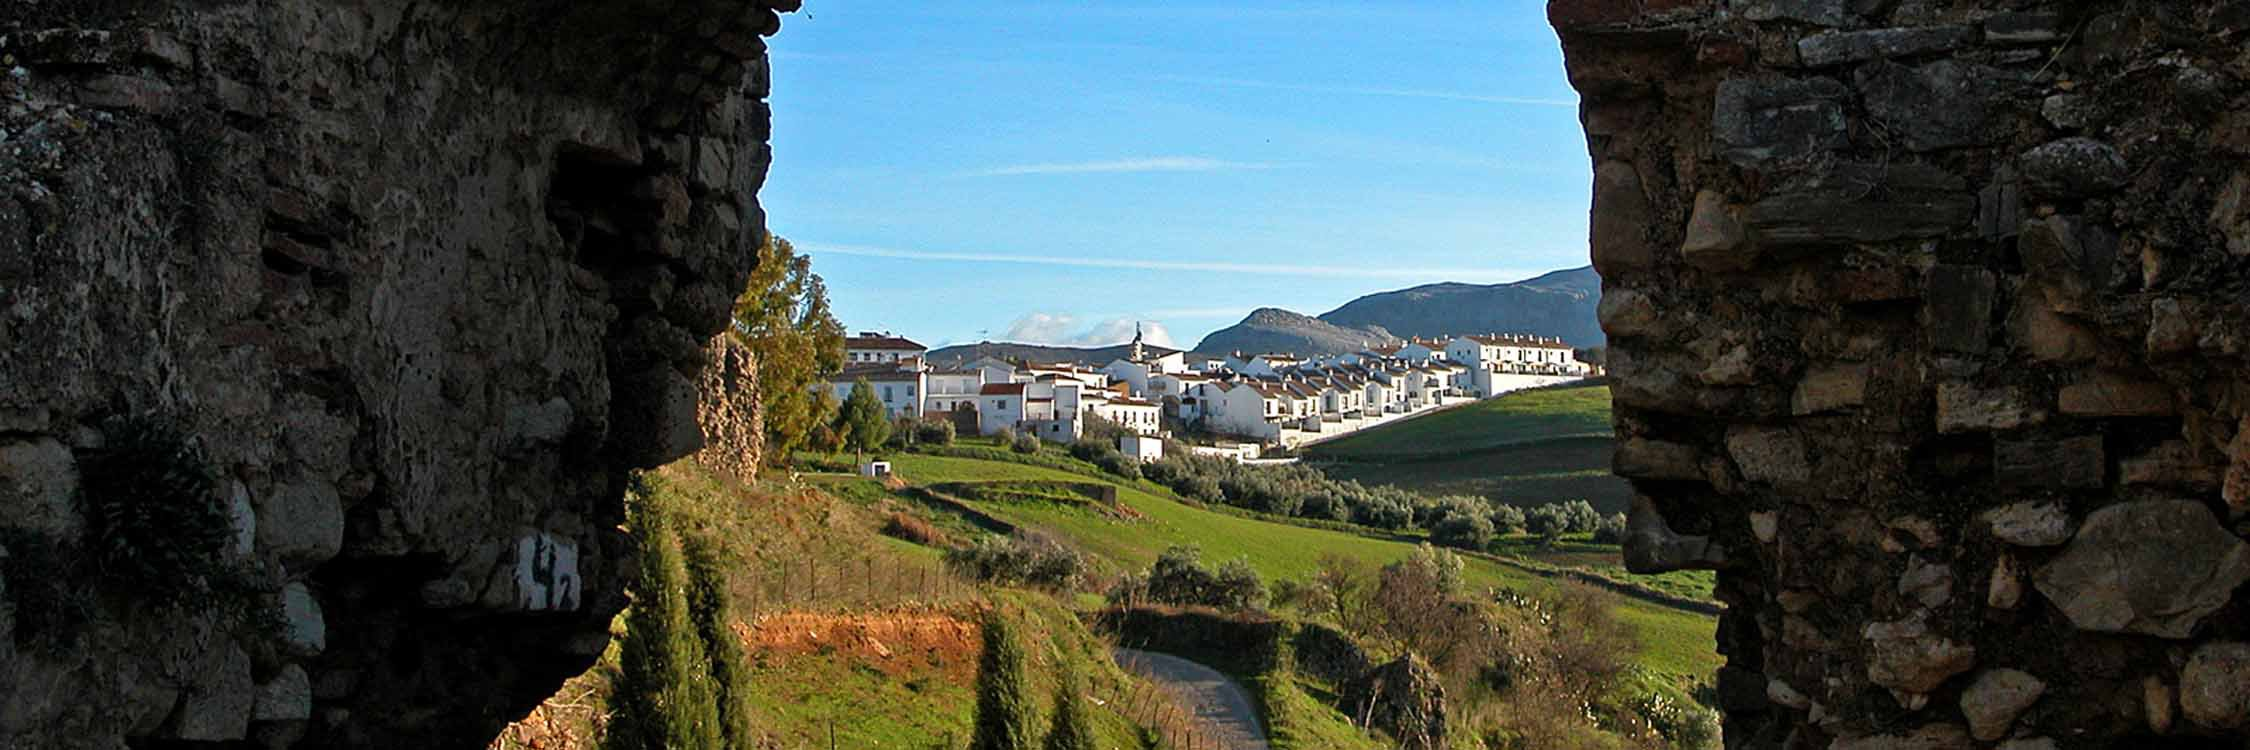 incentive-trip-andalusia.jpg